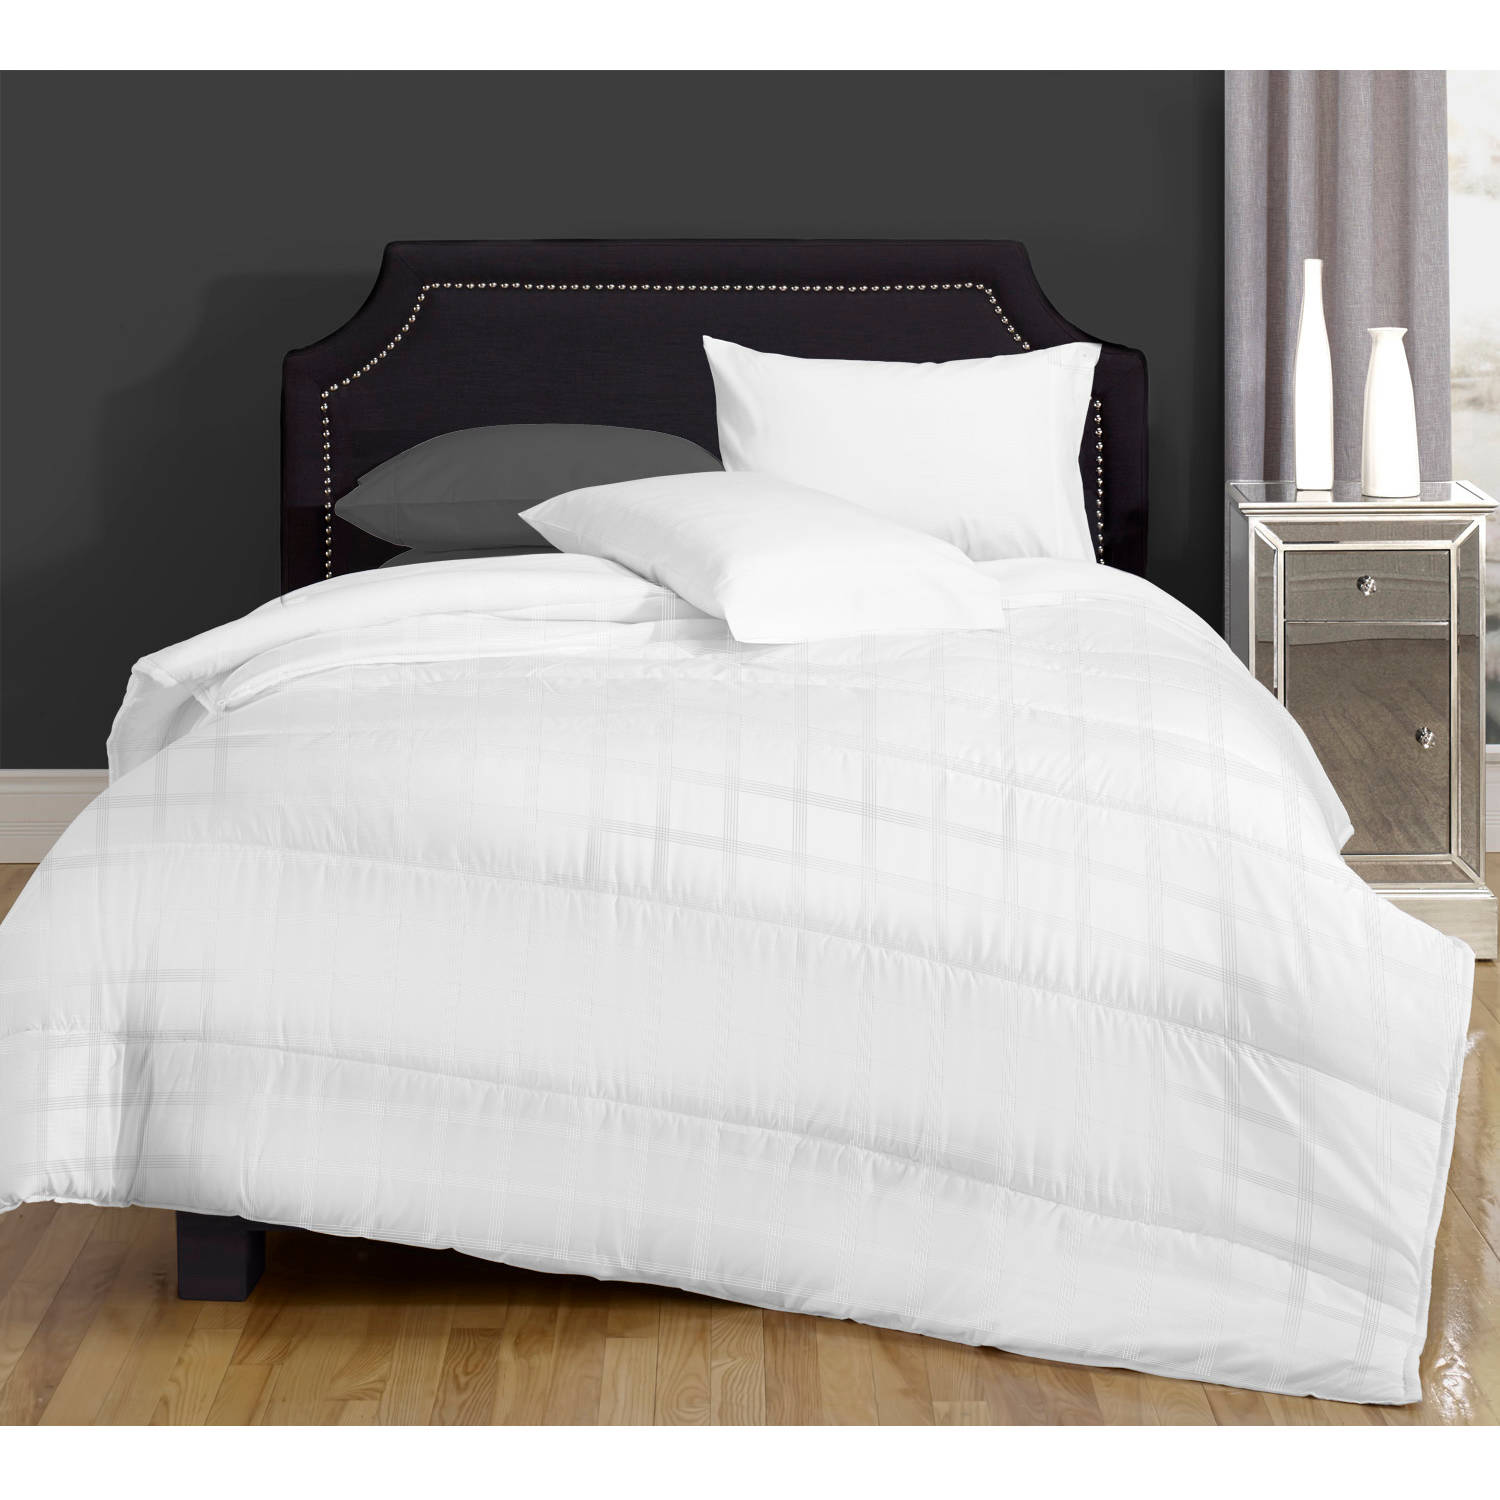 Canada's Best Down Alternative Comforter: Heavy Weight - Twin